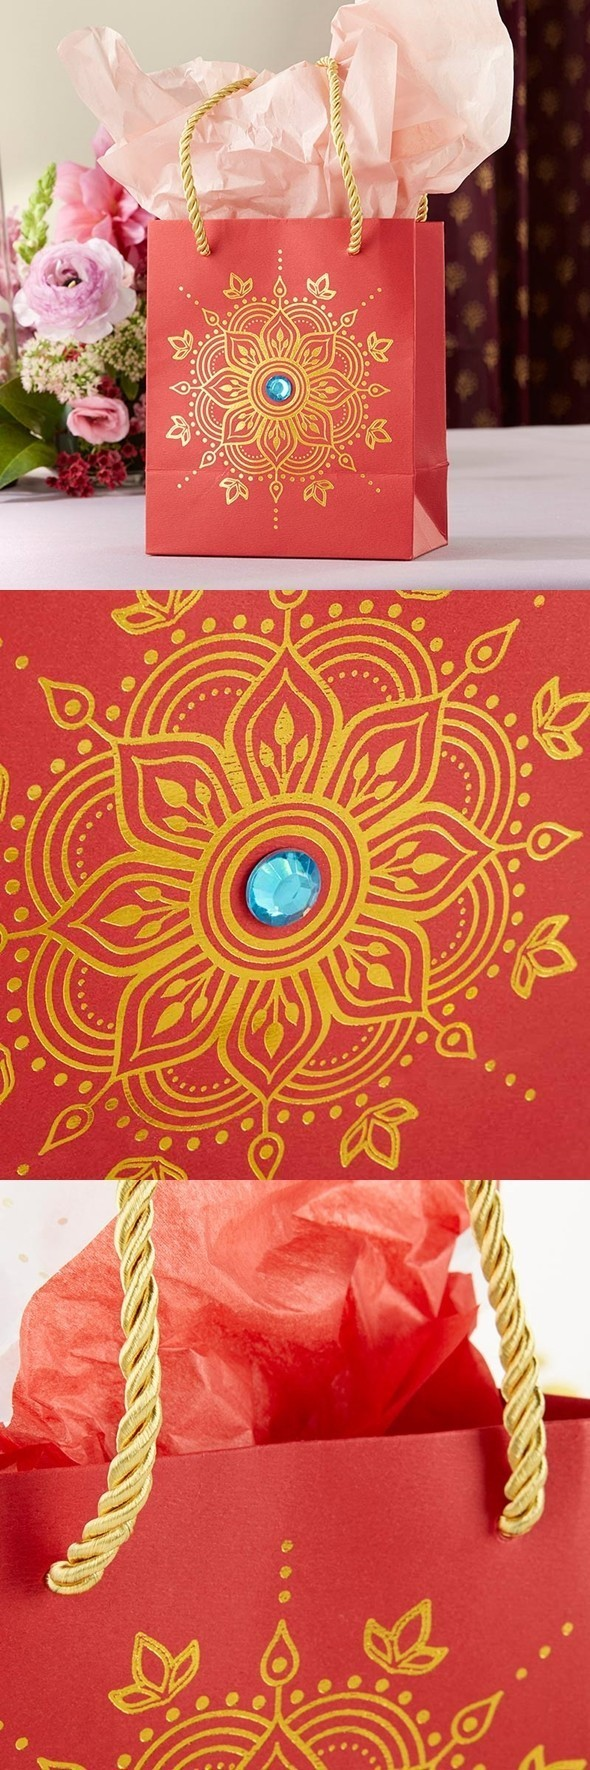 Kate Aspen Indian Jewel Henna Design Red Textured Gift Bags (Set of 6)